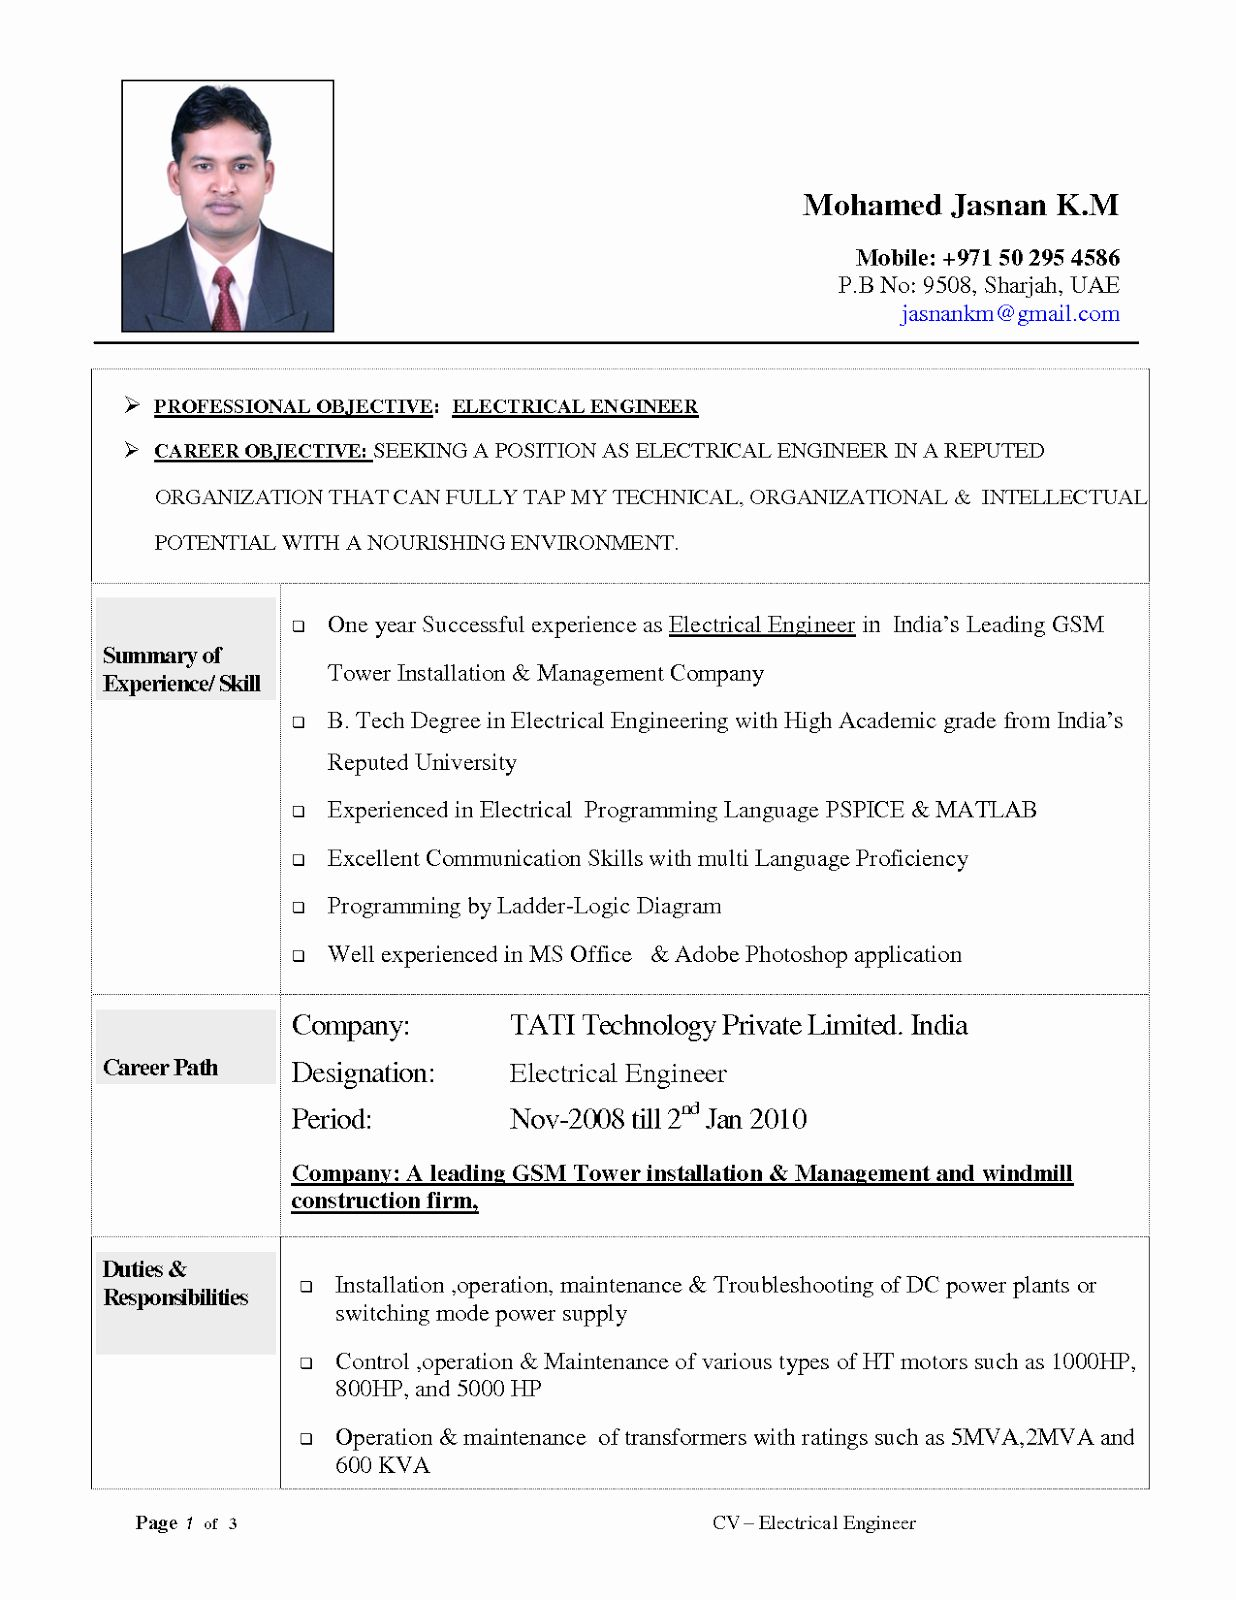 40 Electrical Engineer Resume Sample in 2020 Career